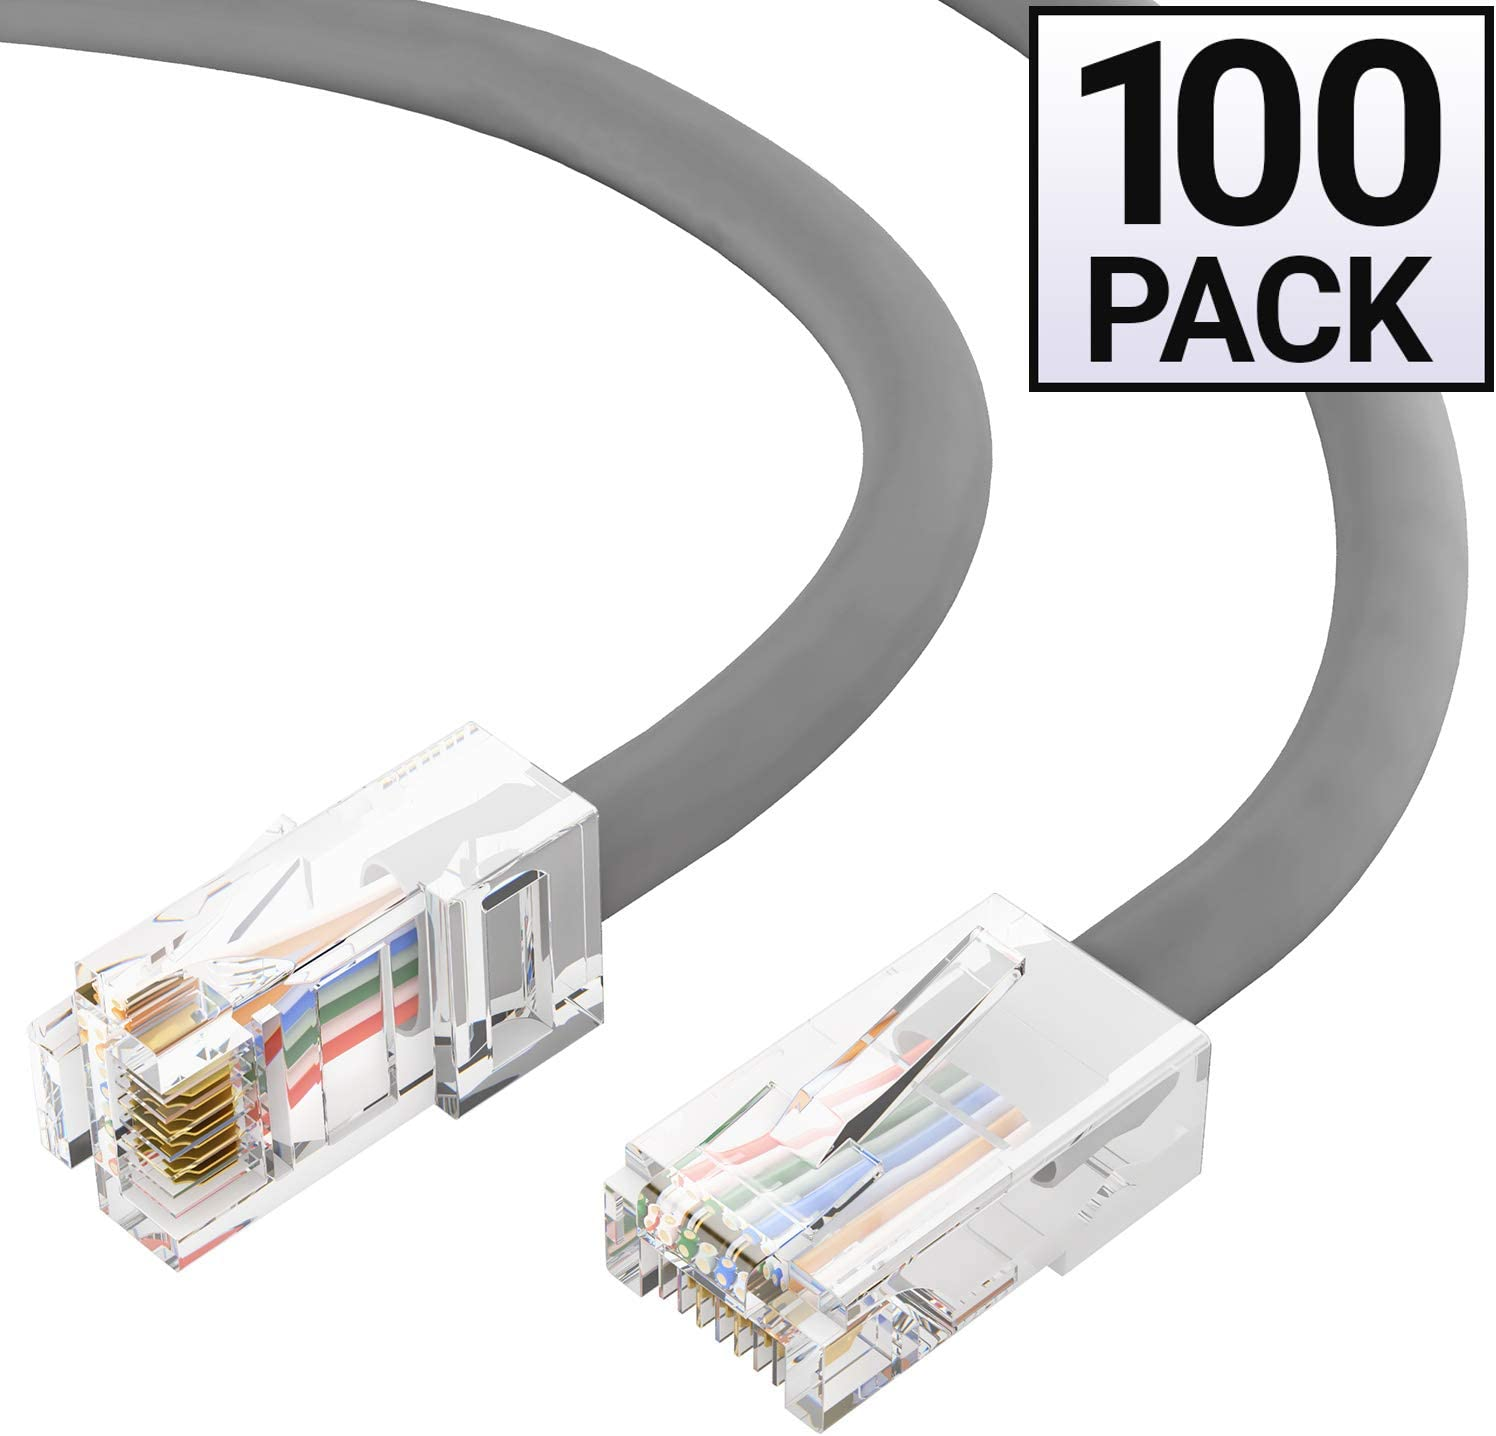 Available in 28 Lengths and 10 Colors Cat5e Plenum Ethernet Cable RJ45 10Gbps High Speed LAN Internet Cord 25 Feet - Gray Computer Network Cable with Bootless Connector CMP GOWOS 5-Pack